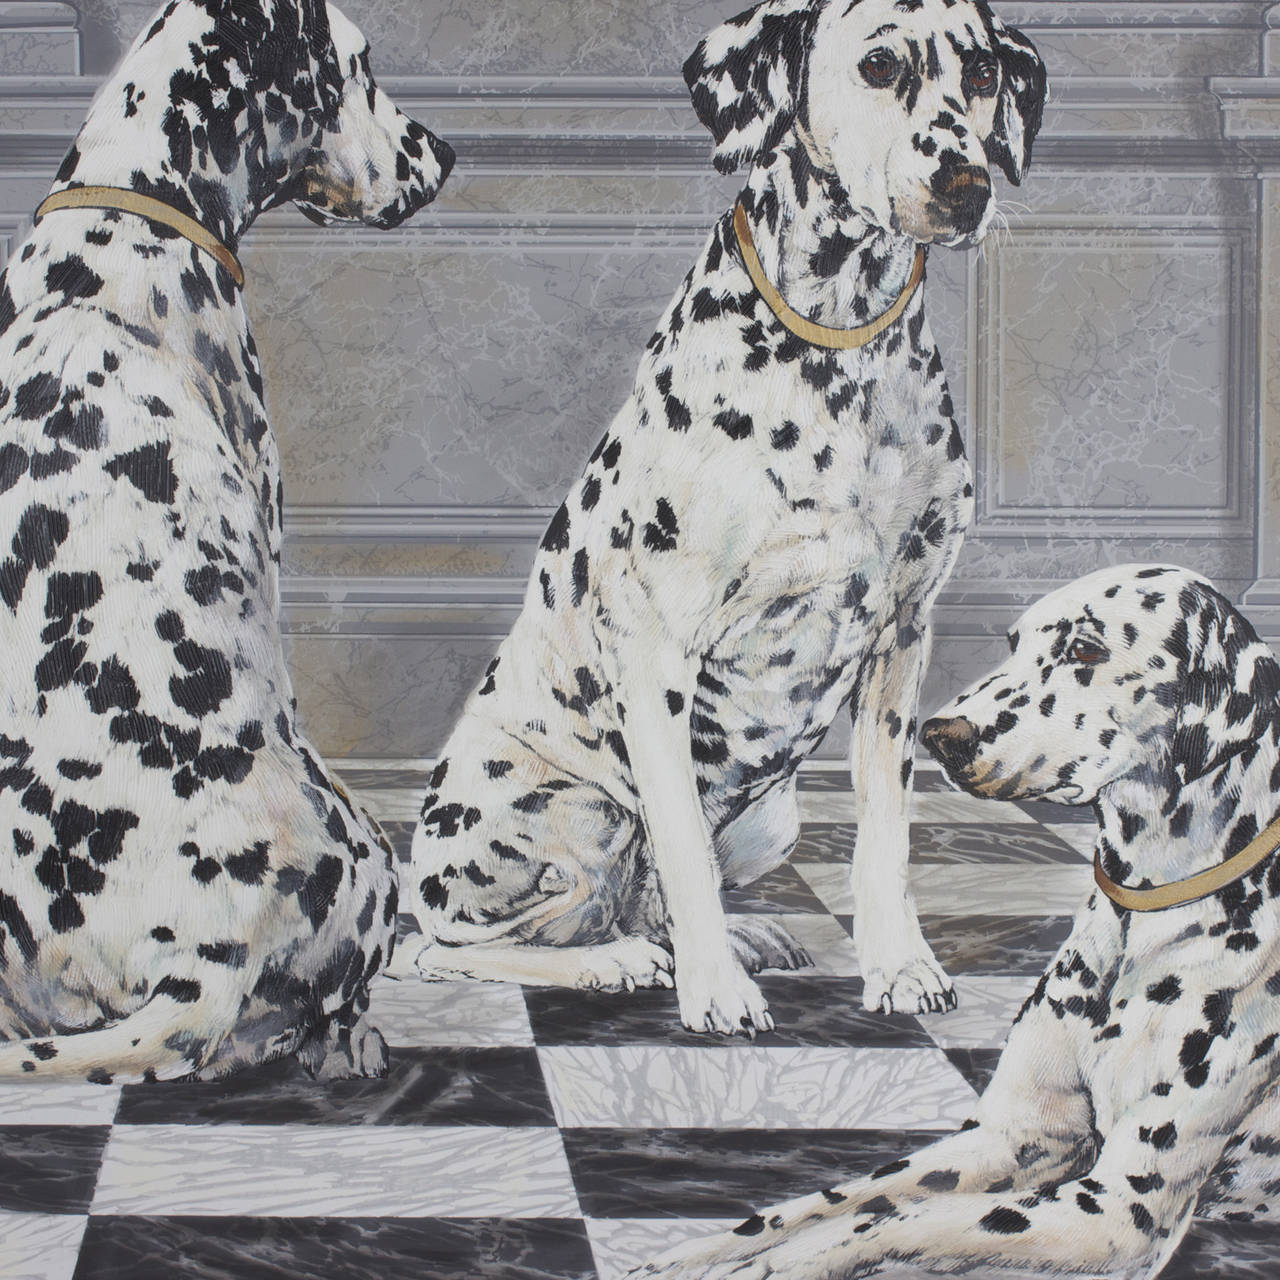 This Dalmatian painting has a modernist approach to an age old tradition of pet dogs in paintings. A giant painting on canvas of three Dalmatians in a Gustavian palette while touching on several influences. The dogs have an added technic of texture